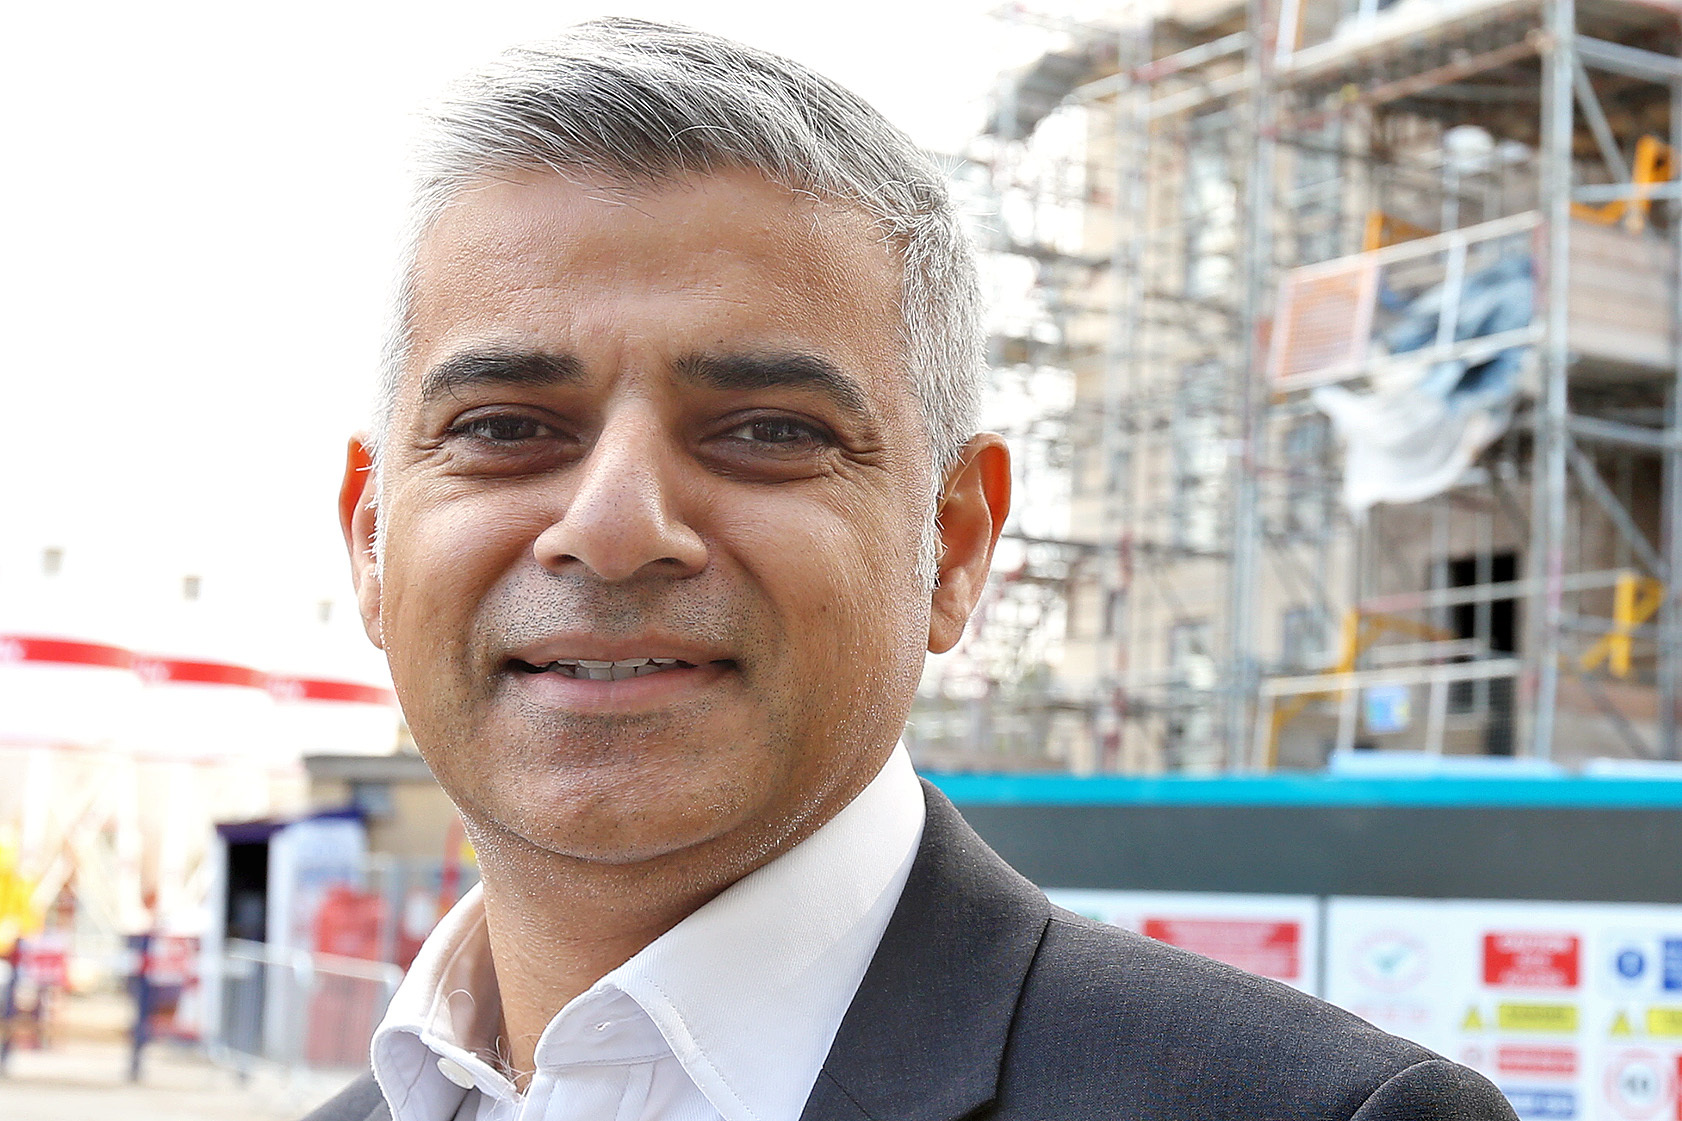 The current Mayor of London, Sadiq Khan